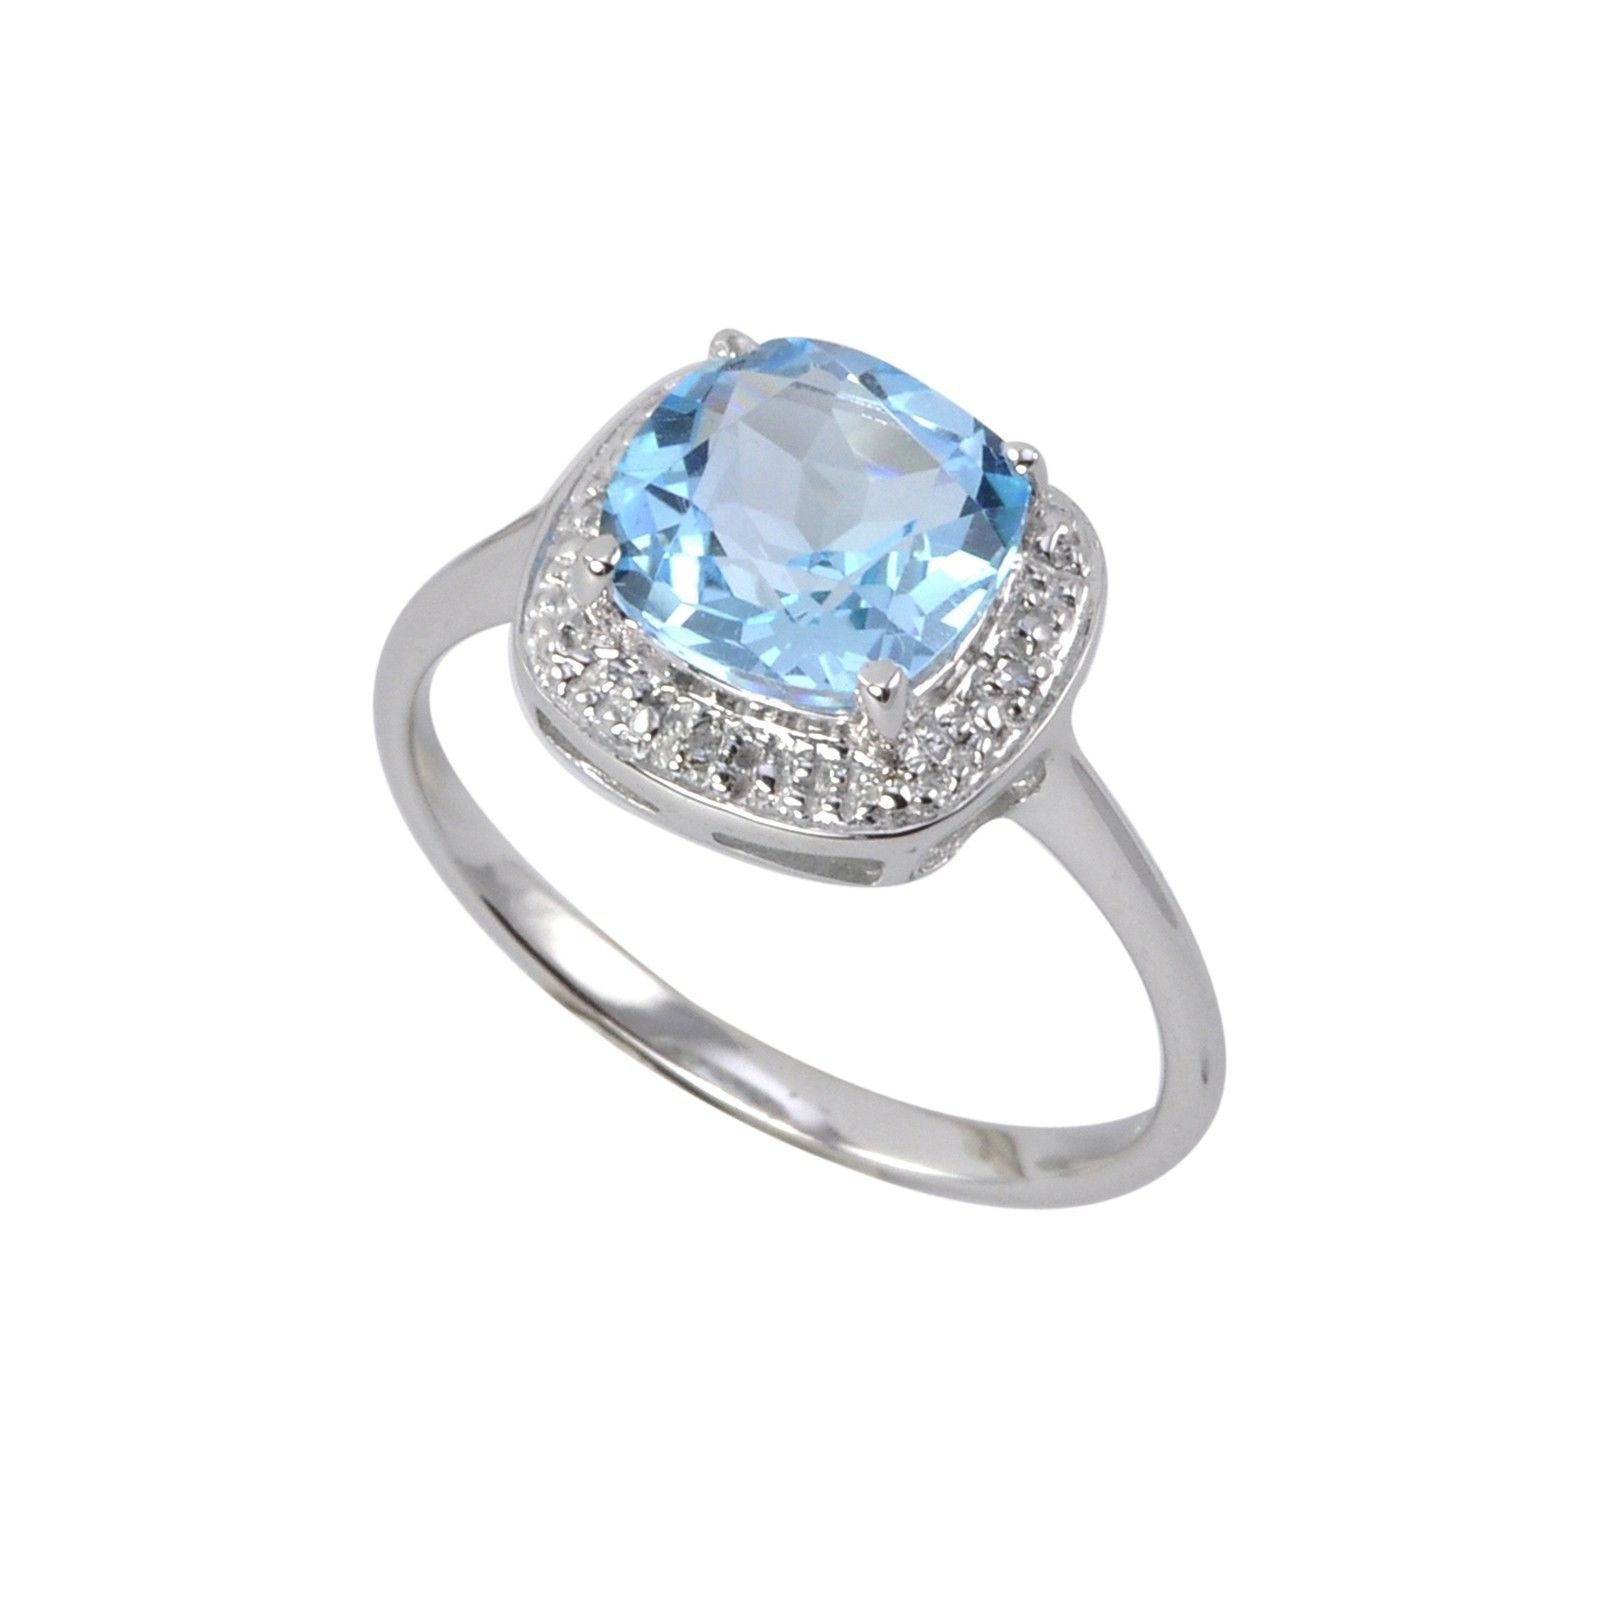 fullxfull alternative en rings il stone zoom hk blue listing engagement raw ring